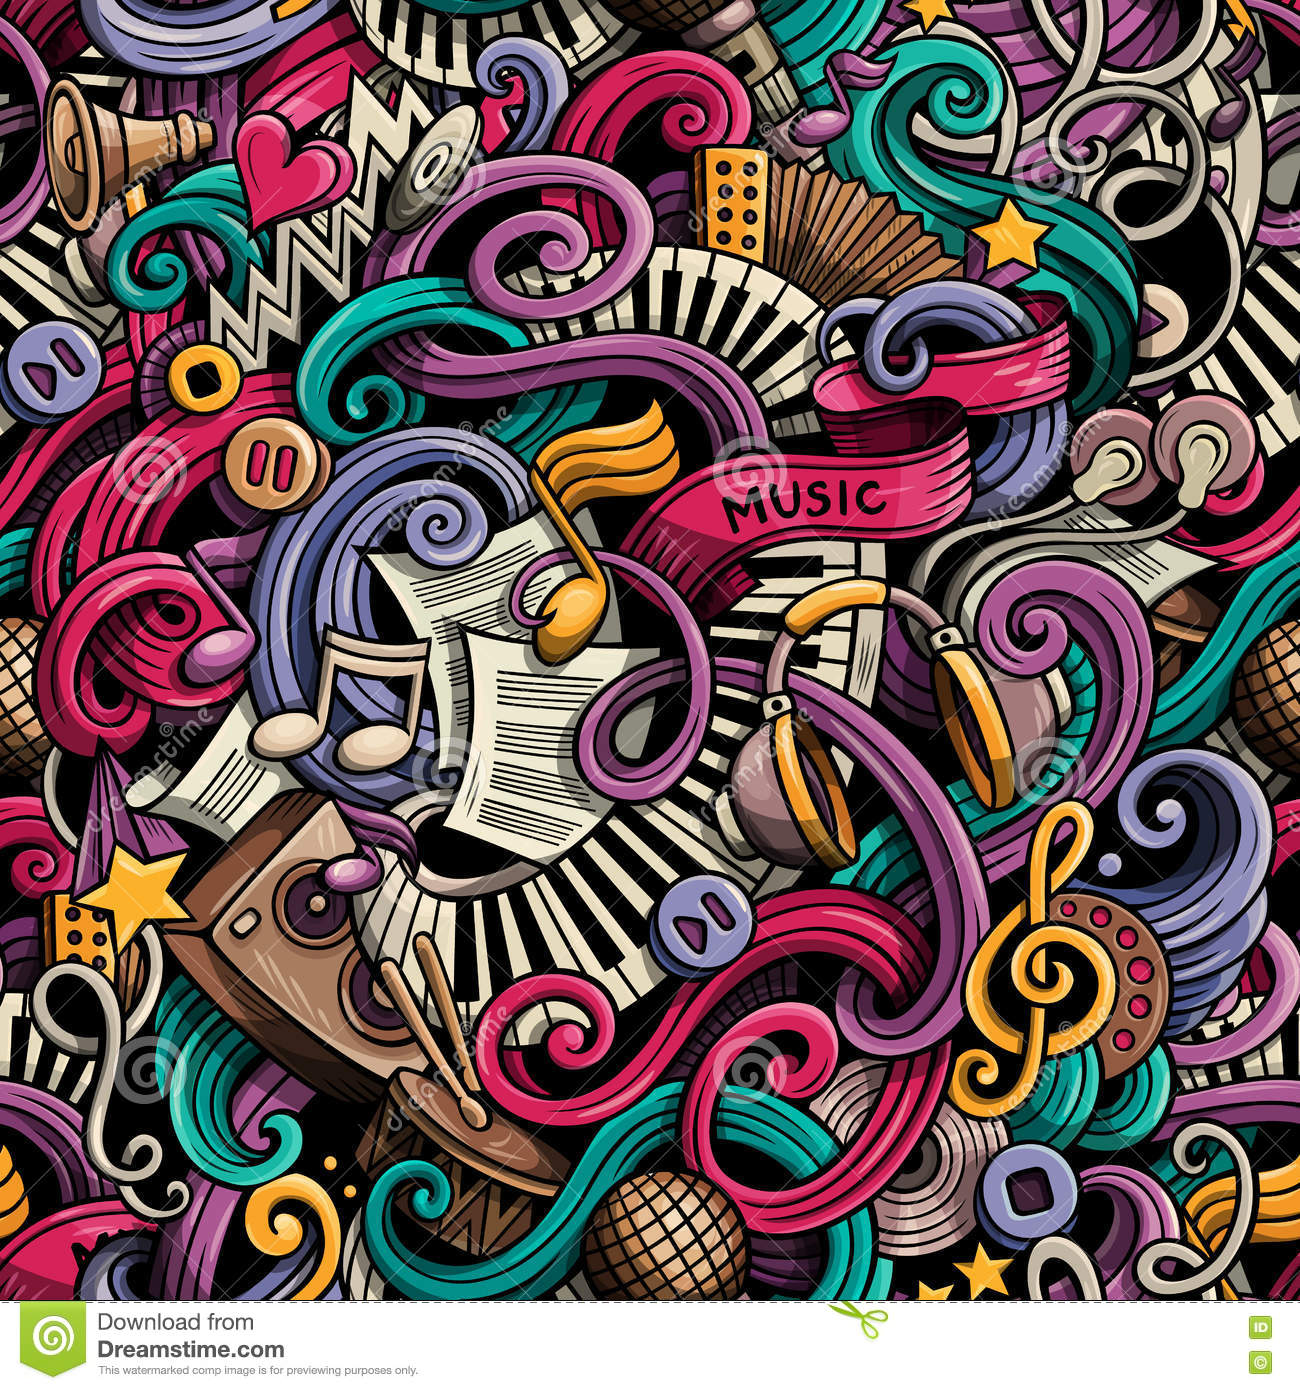 Cartoon cute doodles hand drawn Music seamless pattern. Colorful